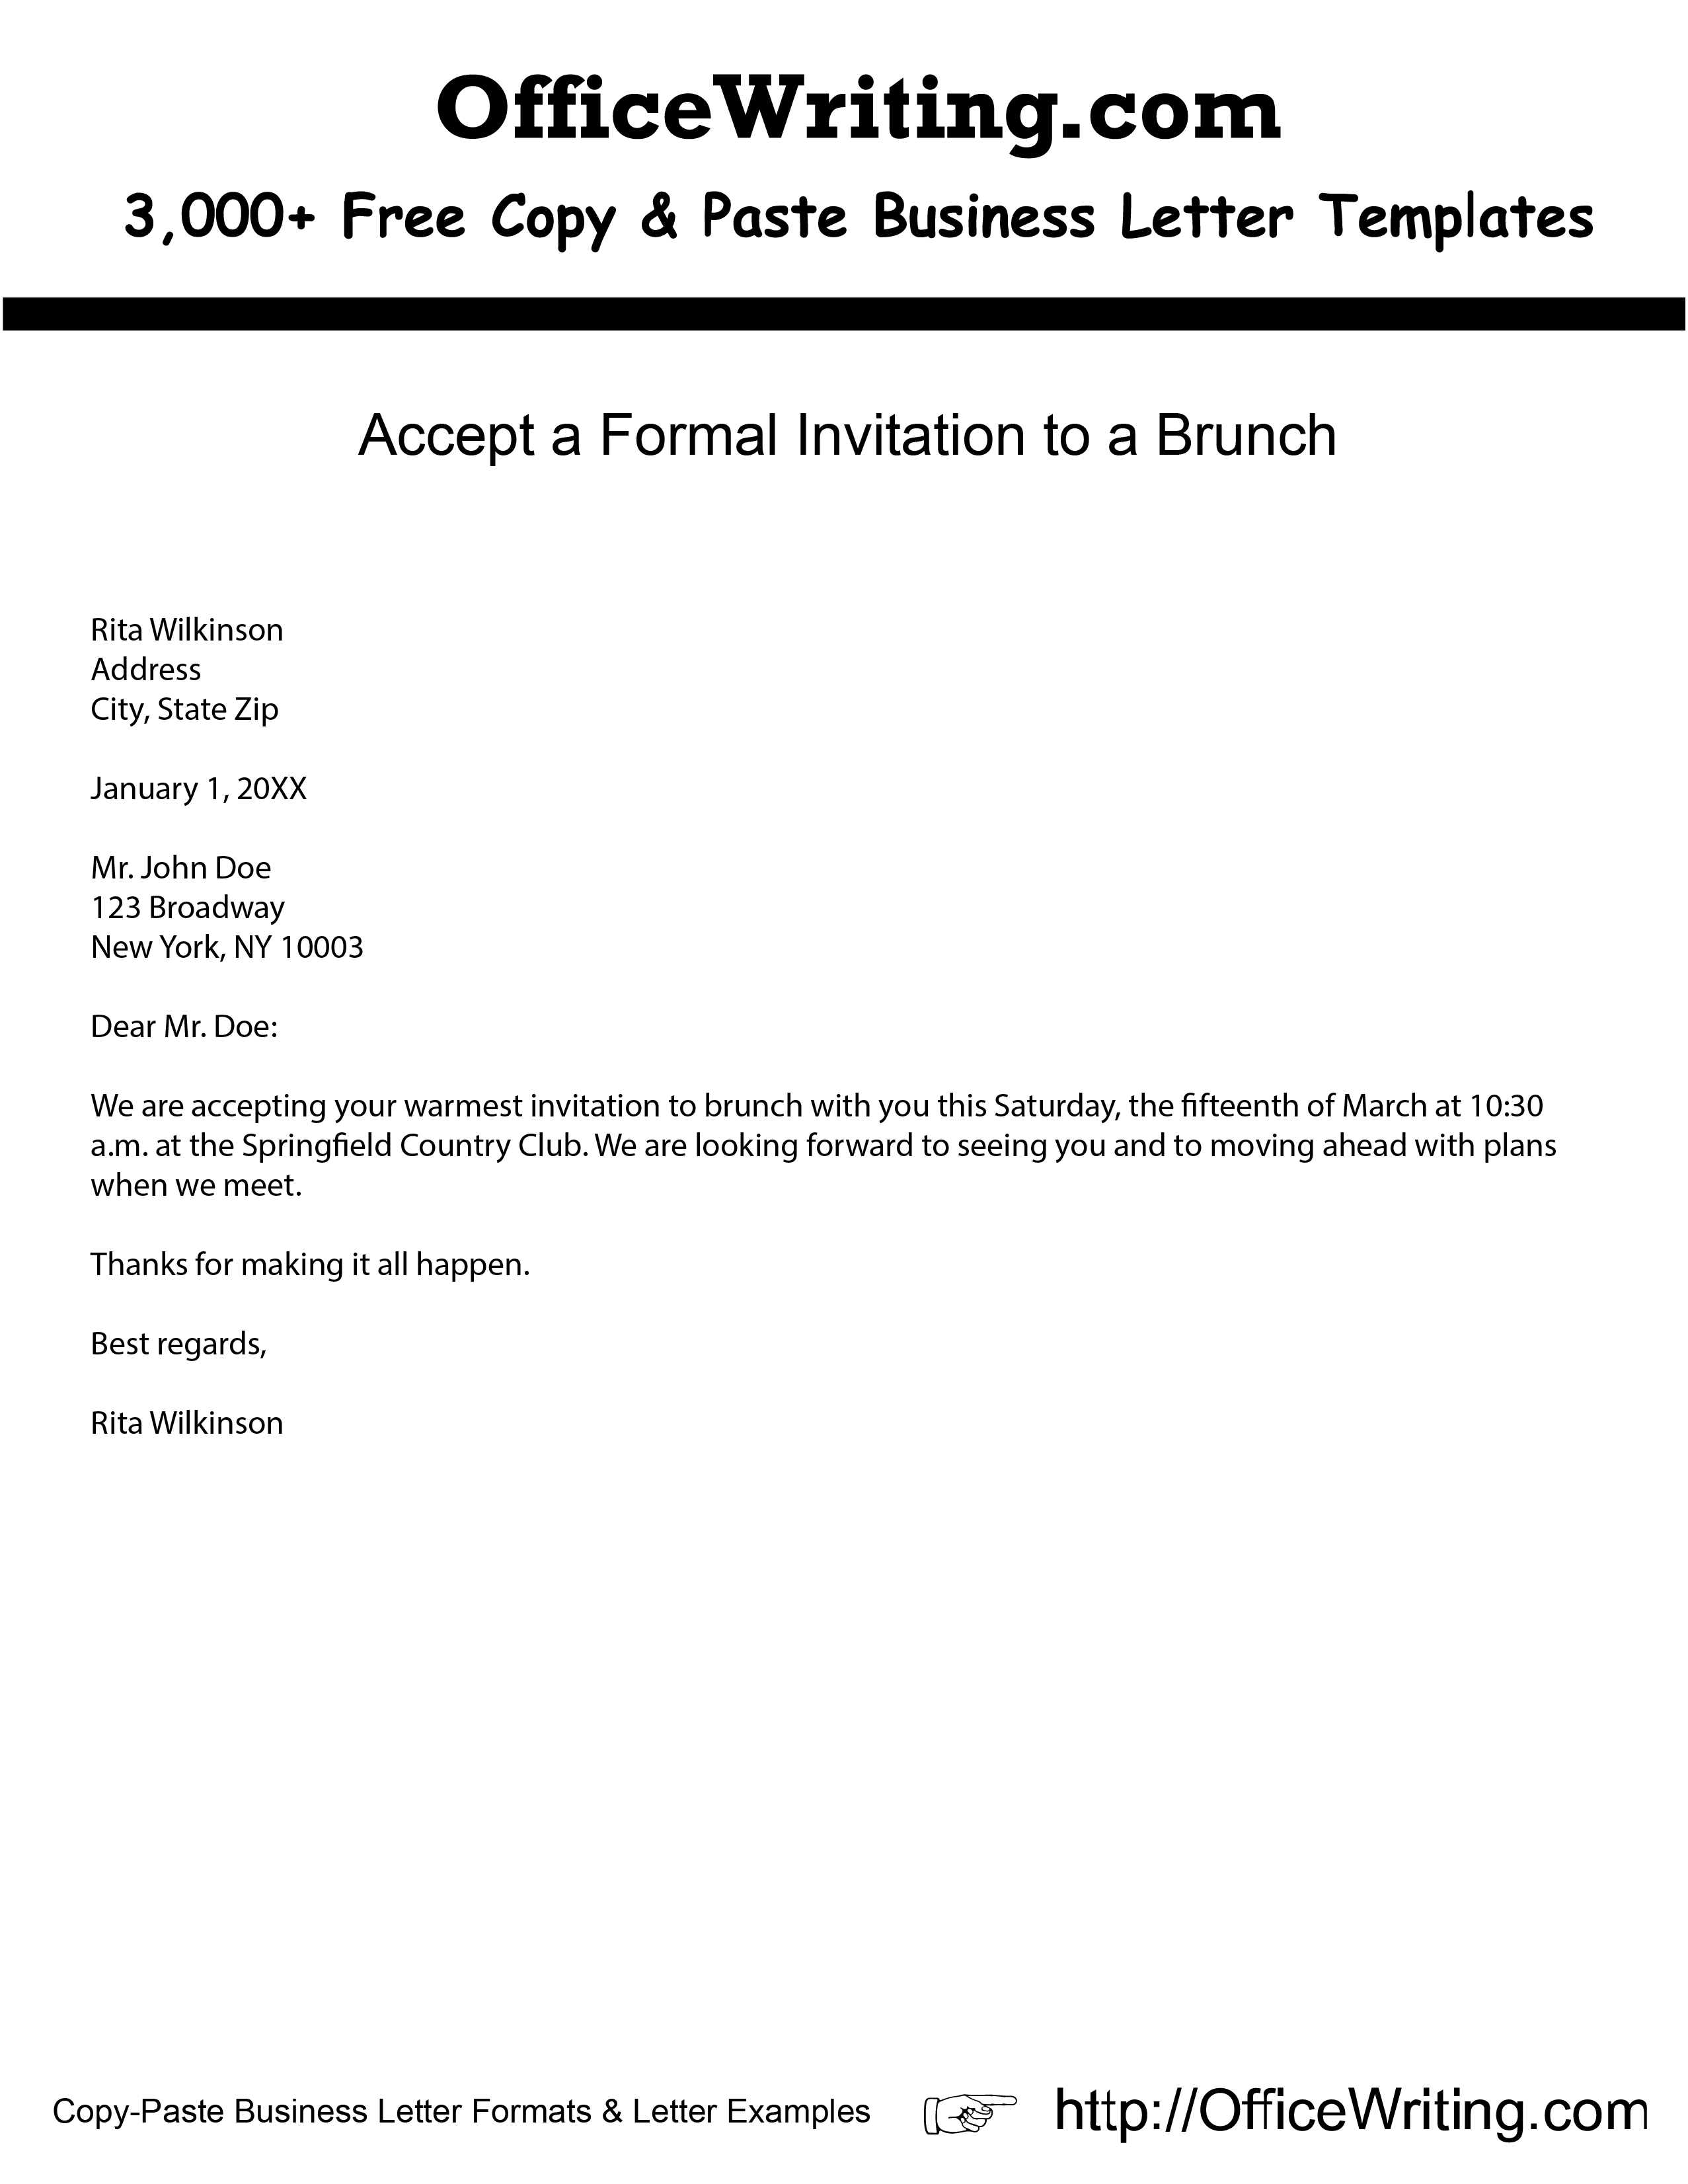 Sample letter to accept an invitation invitationjpg accept a formal invitation to brunch we have over 3 000 free stopboris Choice Image